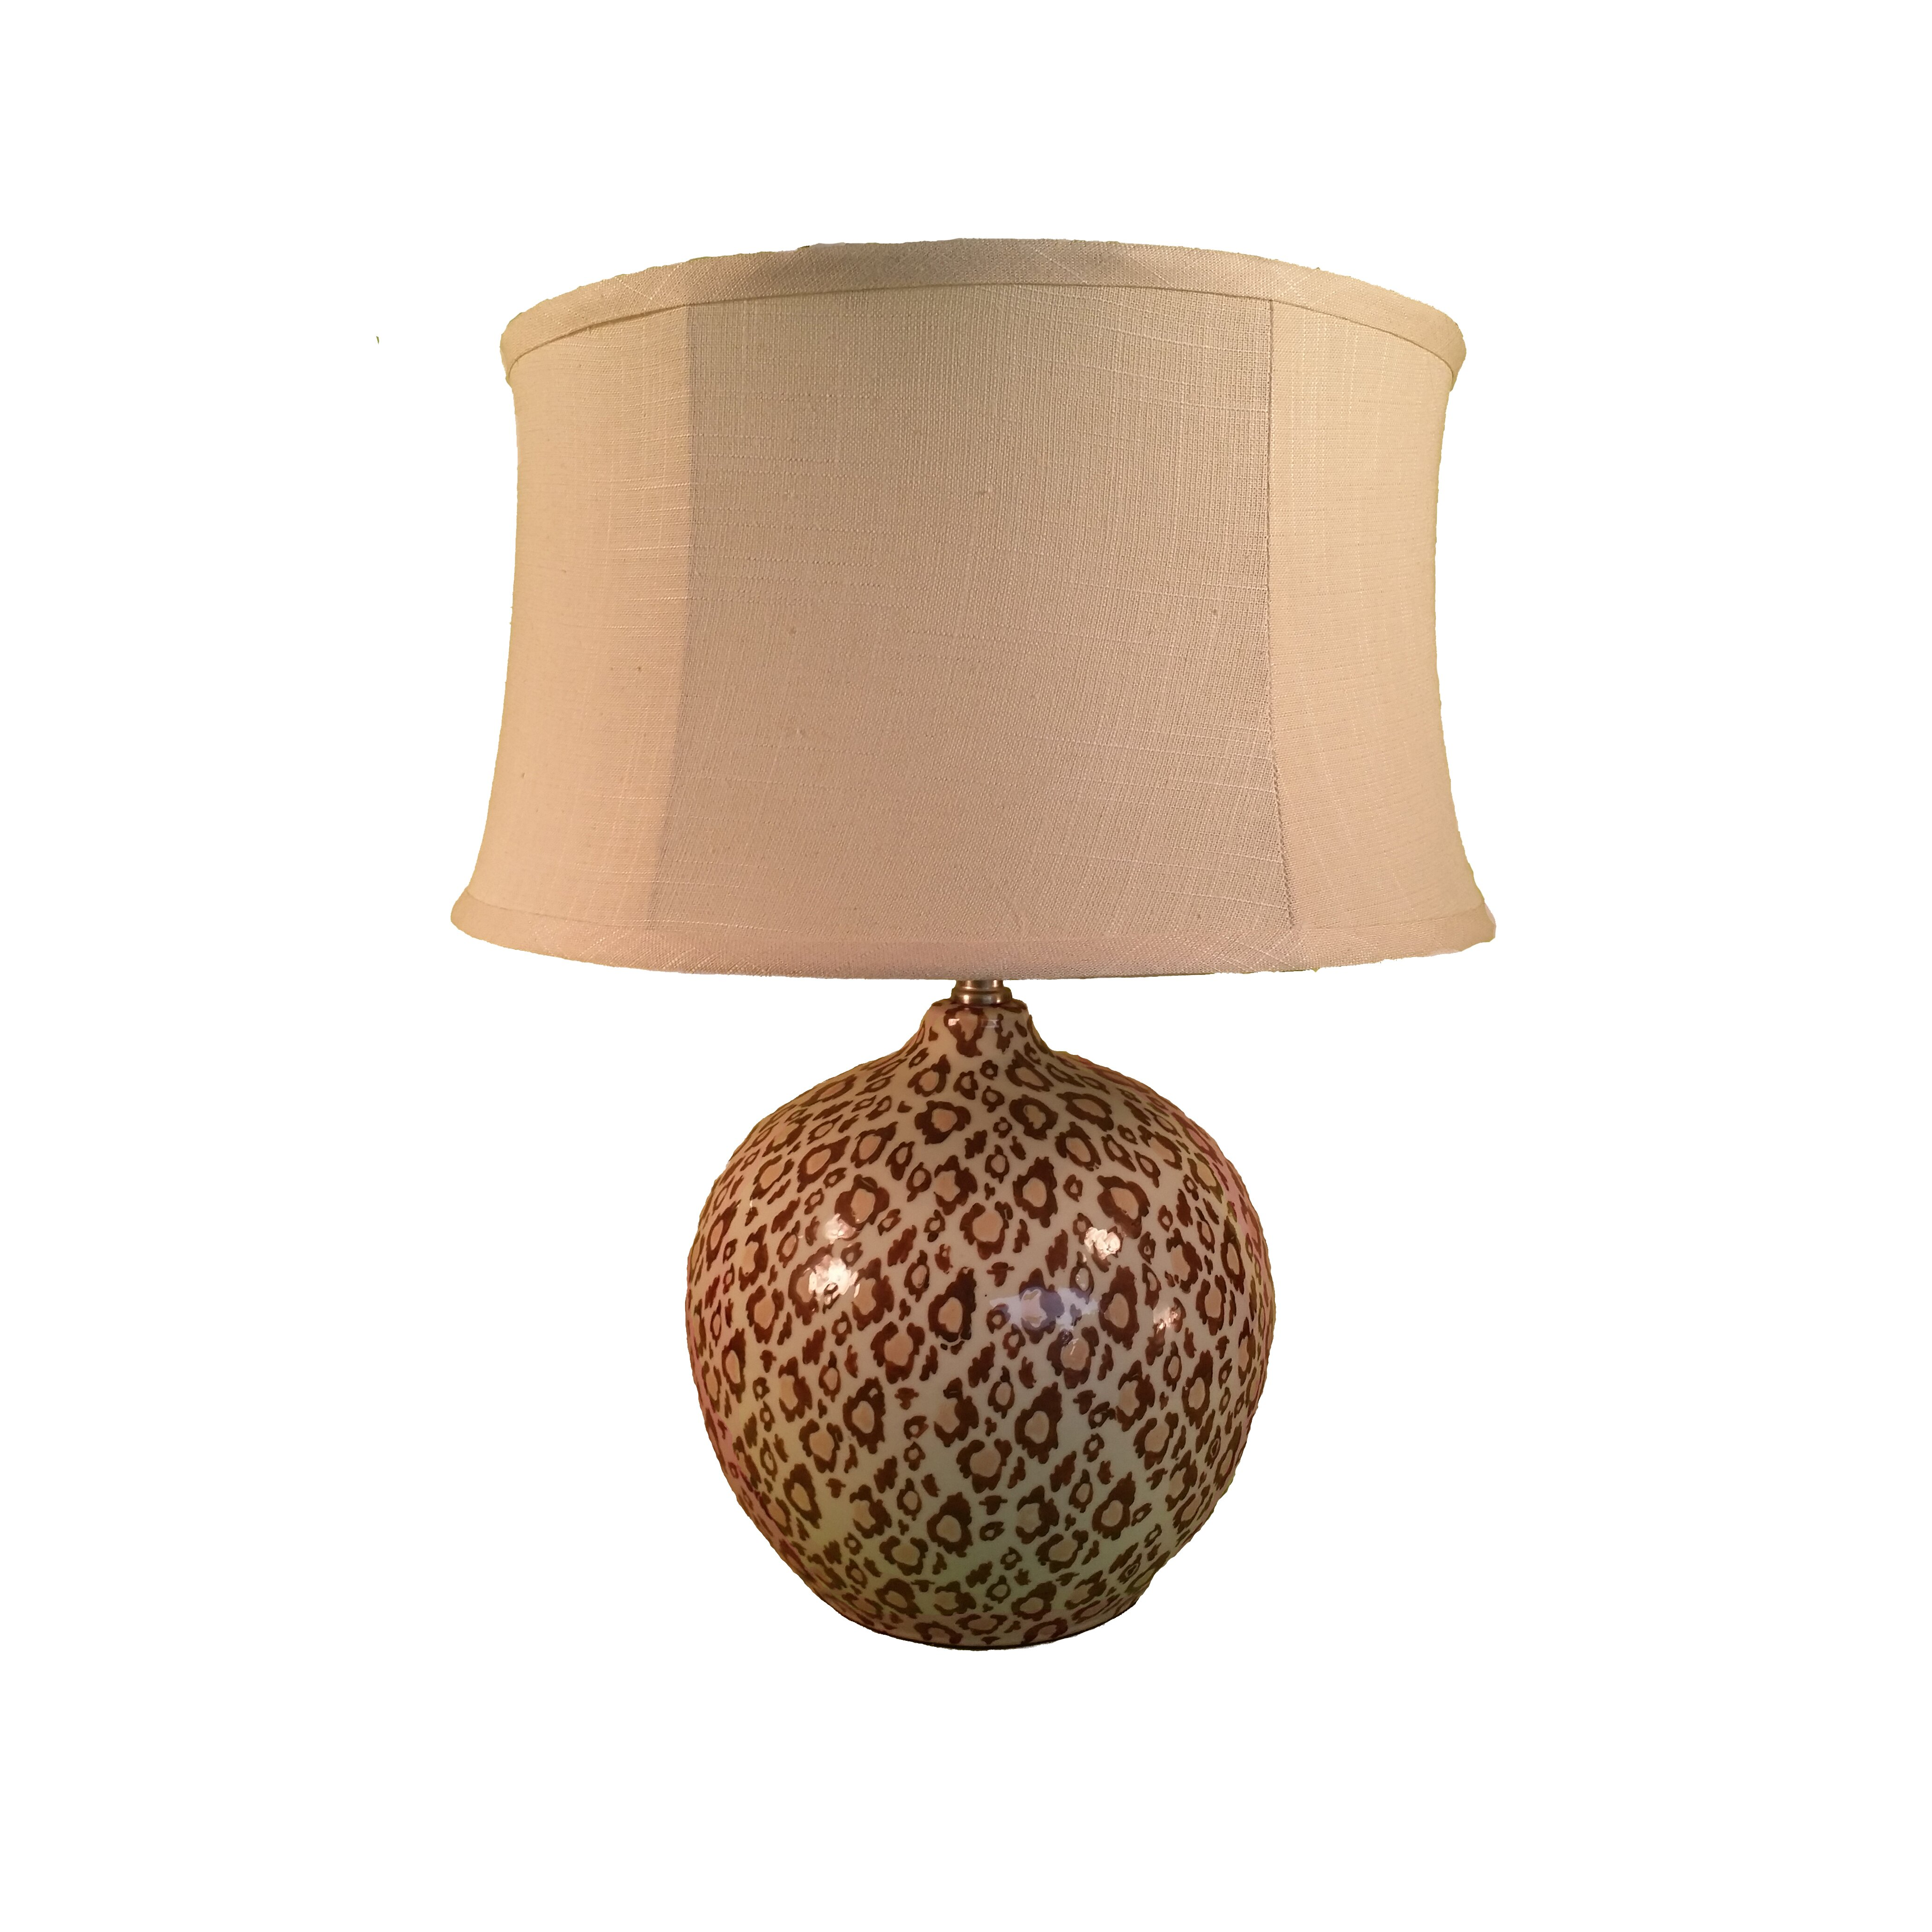 Leopard spotted ceramic 23quot h table lamp with drum shade for Floor lamp with leopard shade